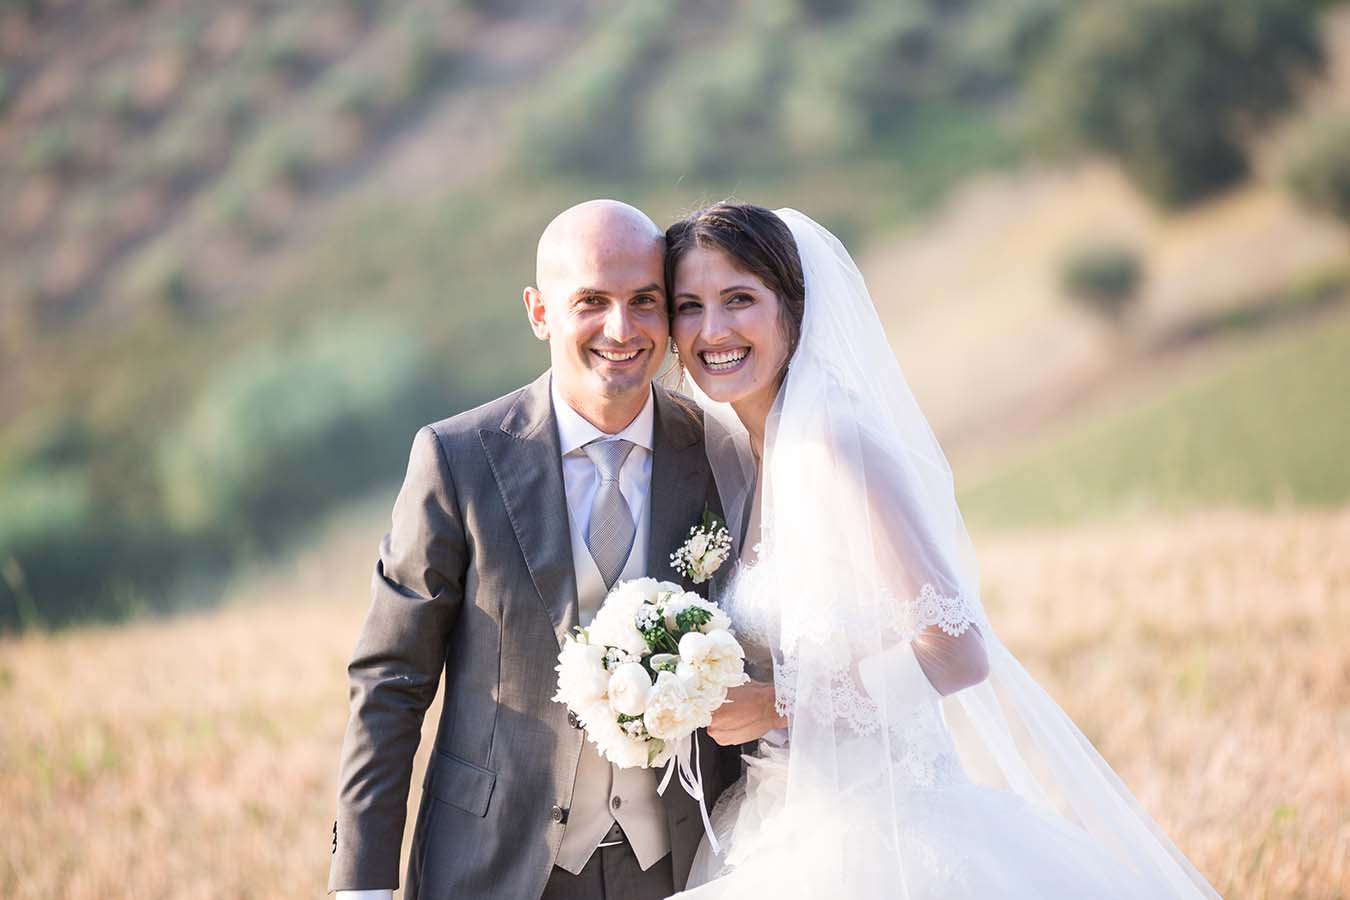 An alfresco Italian wedding in Abruzzo, with outdoor wedding breakfast around a spakrling swimming pool was the perfect setting for Laura and Luca's day.